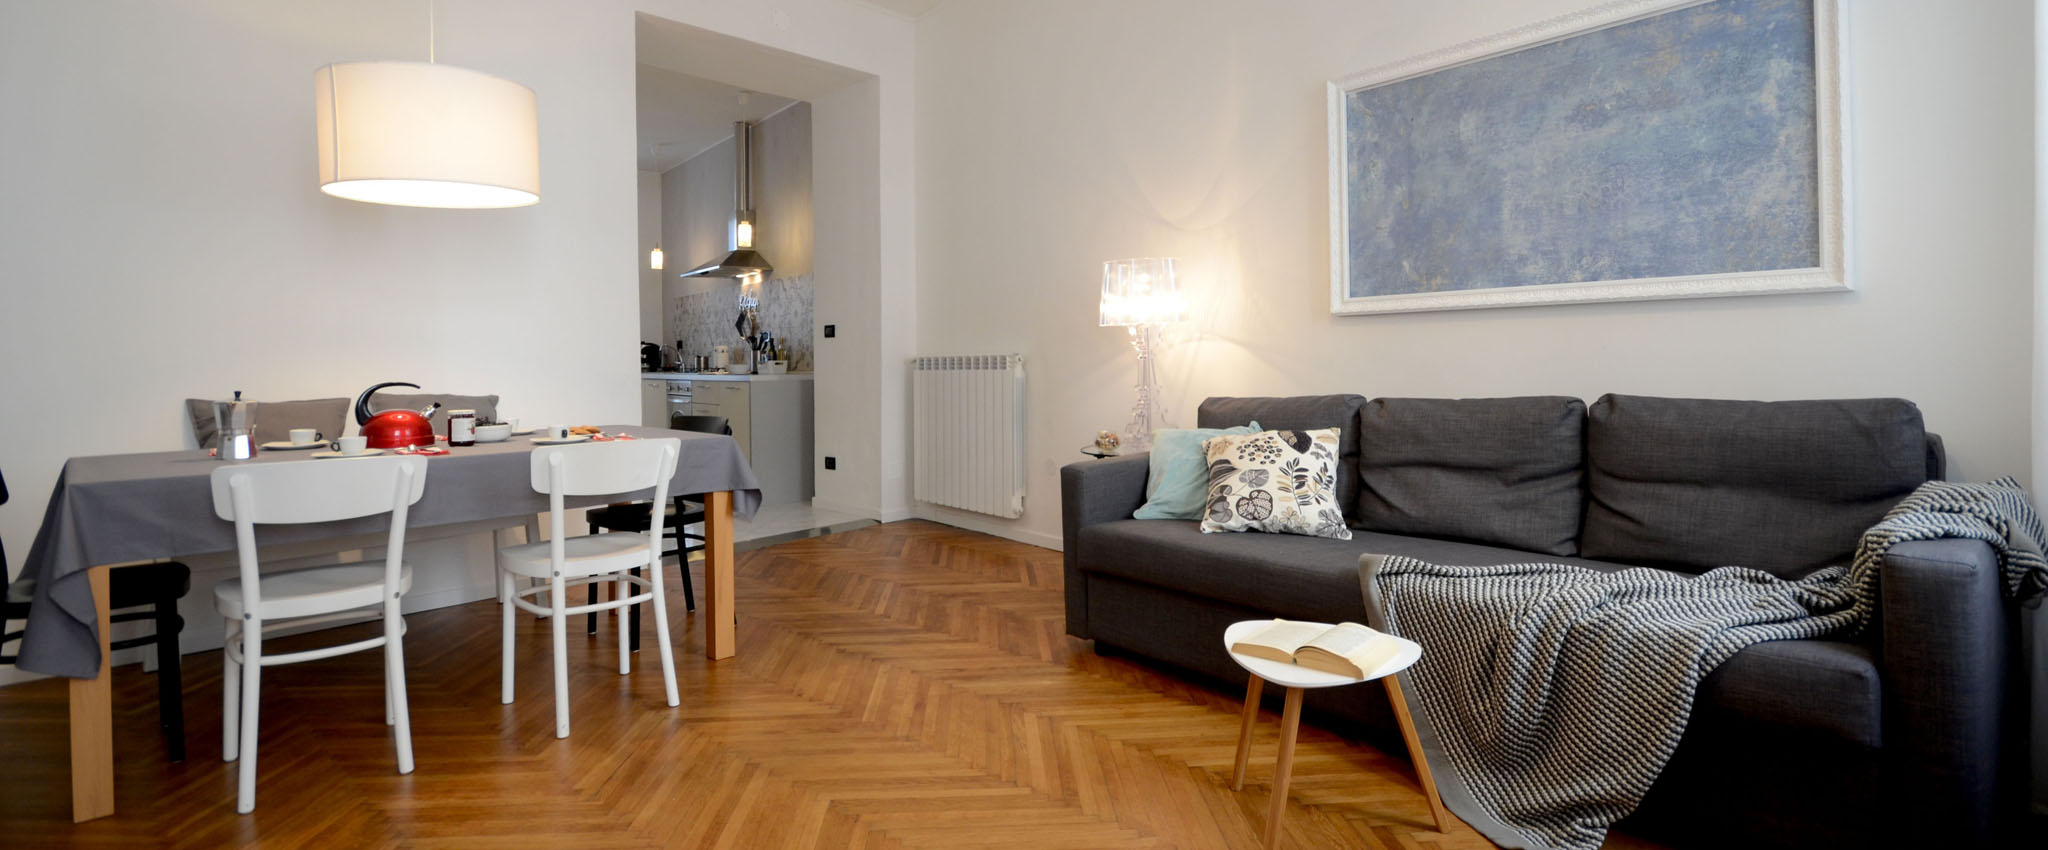 http://www.homestagingtrieste.it/wp-content/uploads/2018/08/HEADER-CHI-SIAMO.jpg